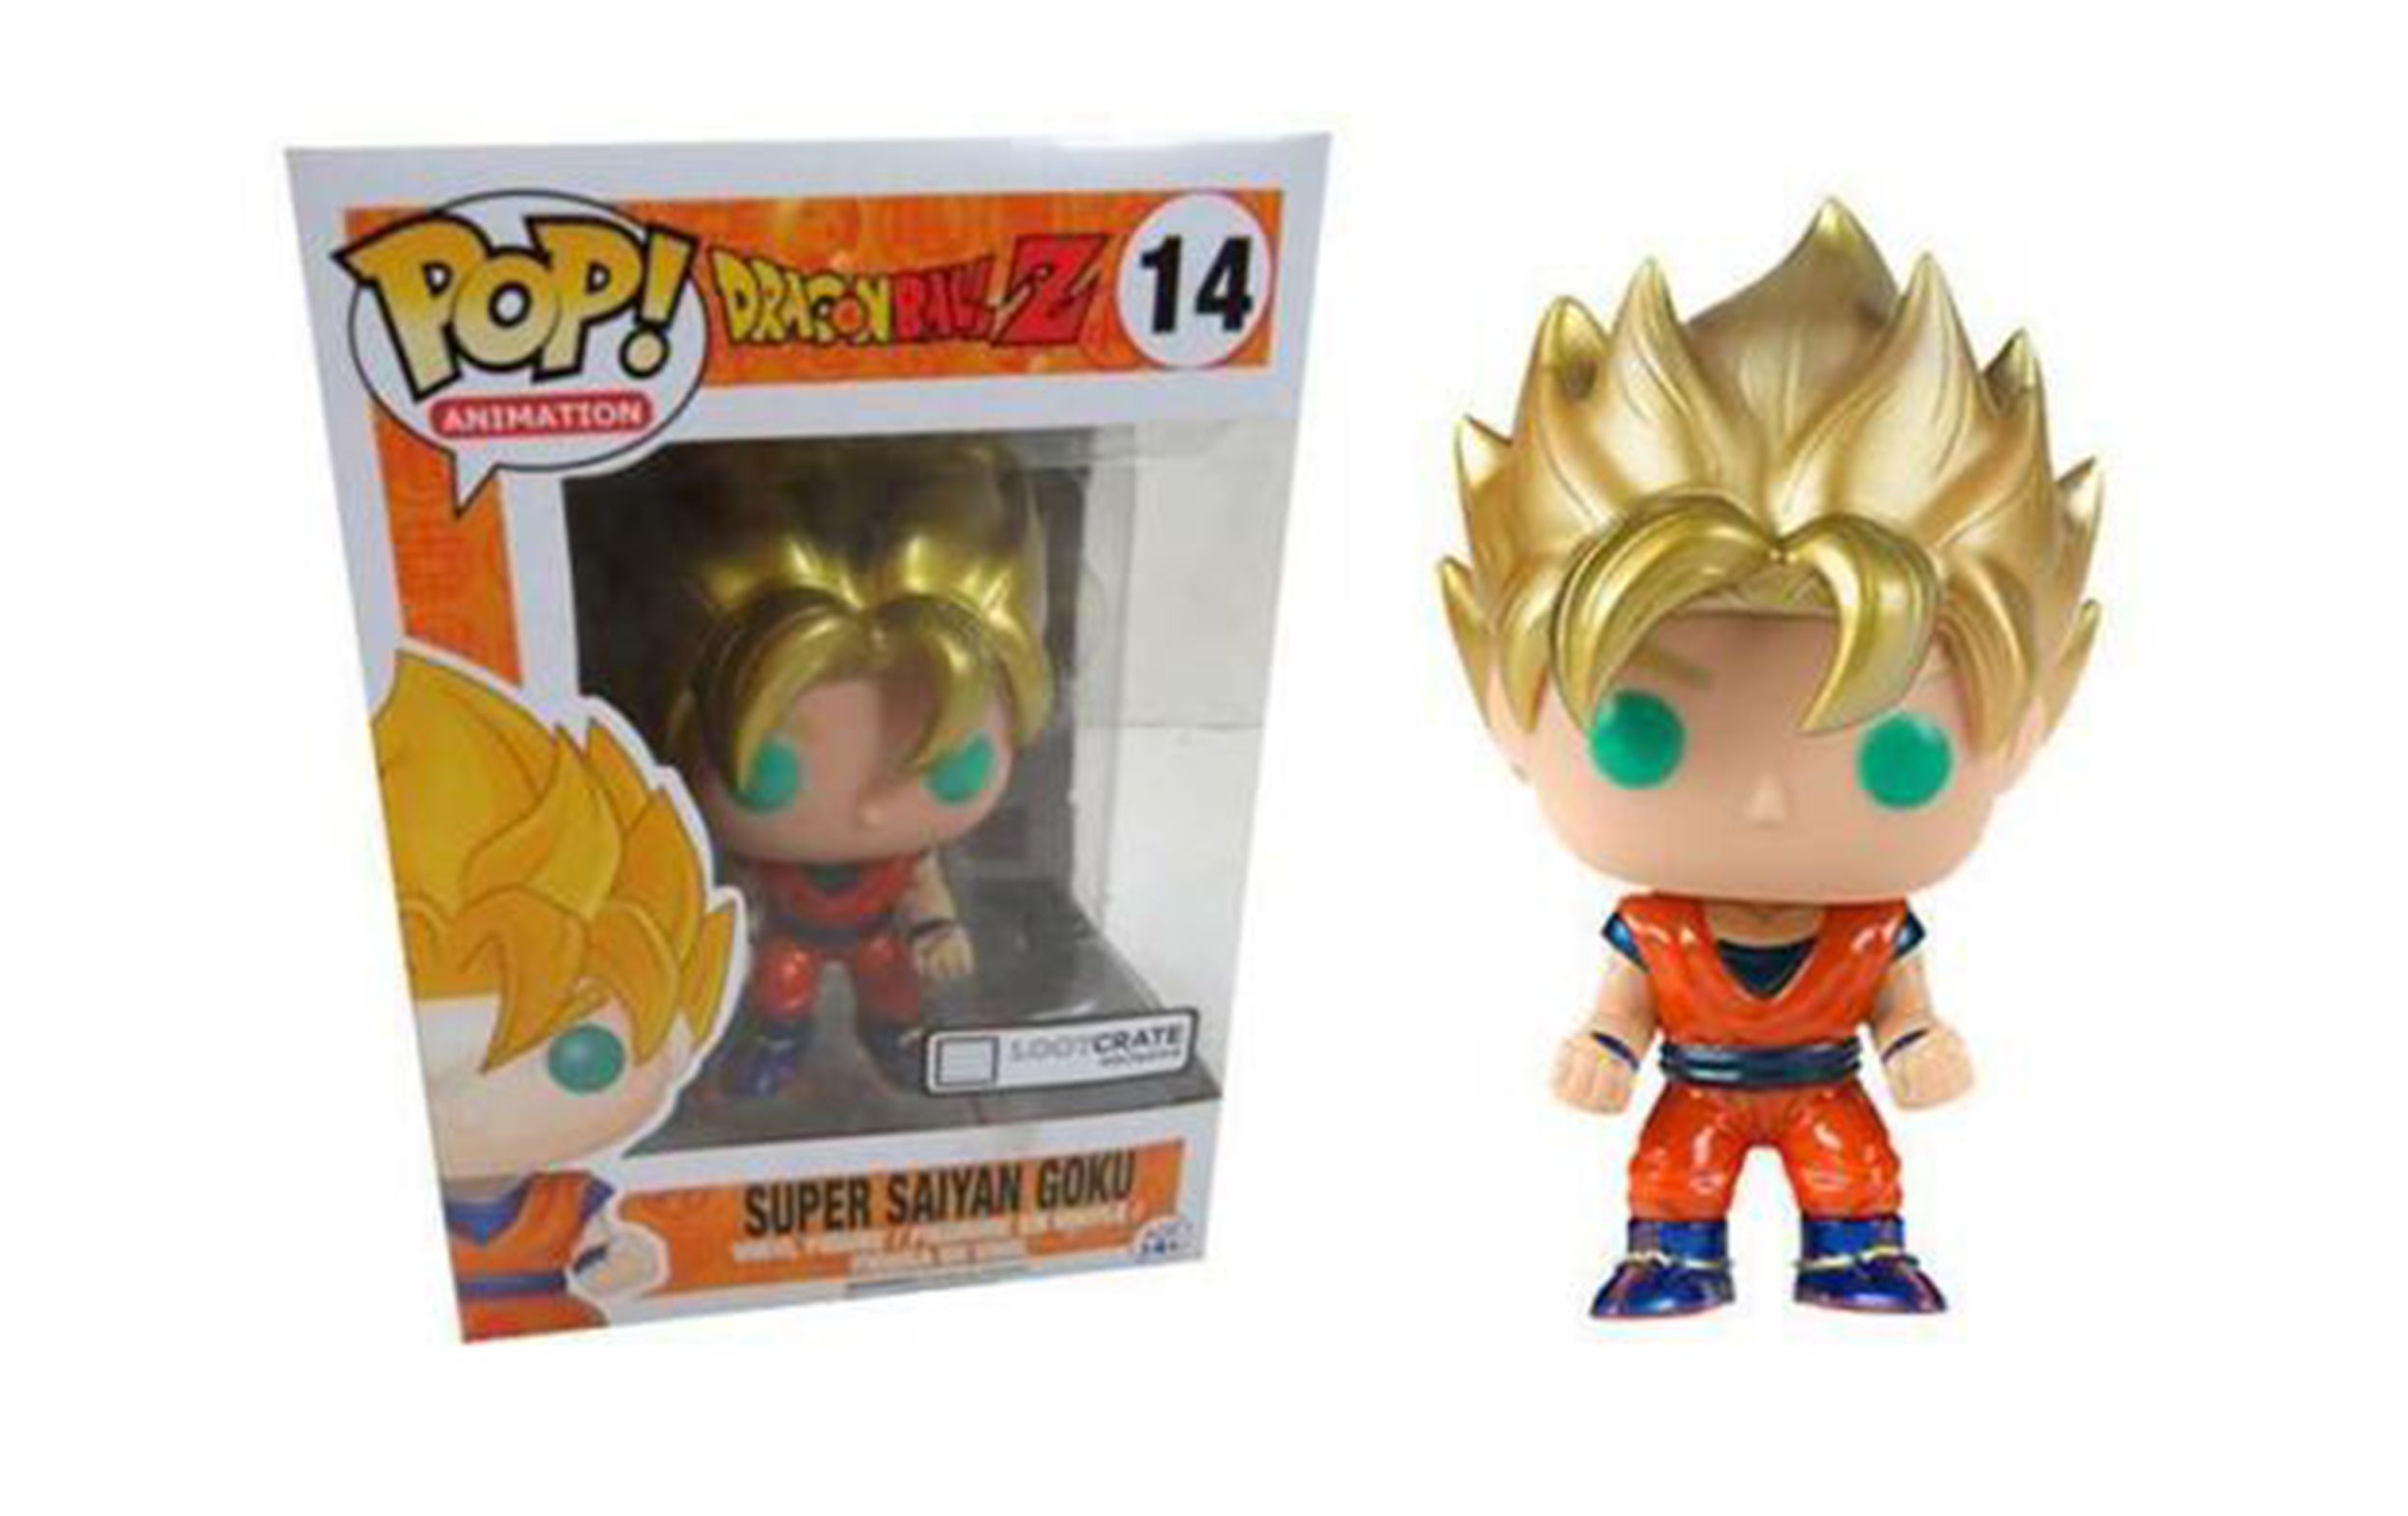 Dragon Ball Z Goku Super Saiyan Metallic Lootcrate 14 Funko POP Vinyl Figure